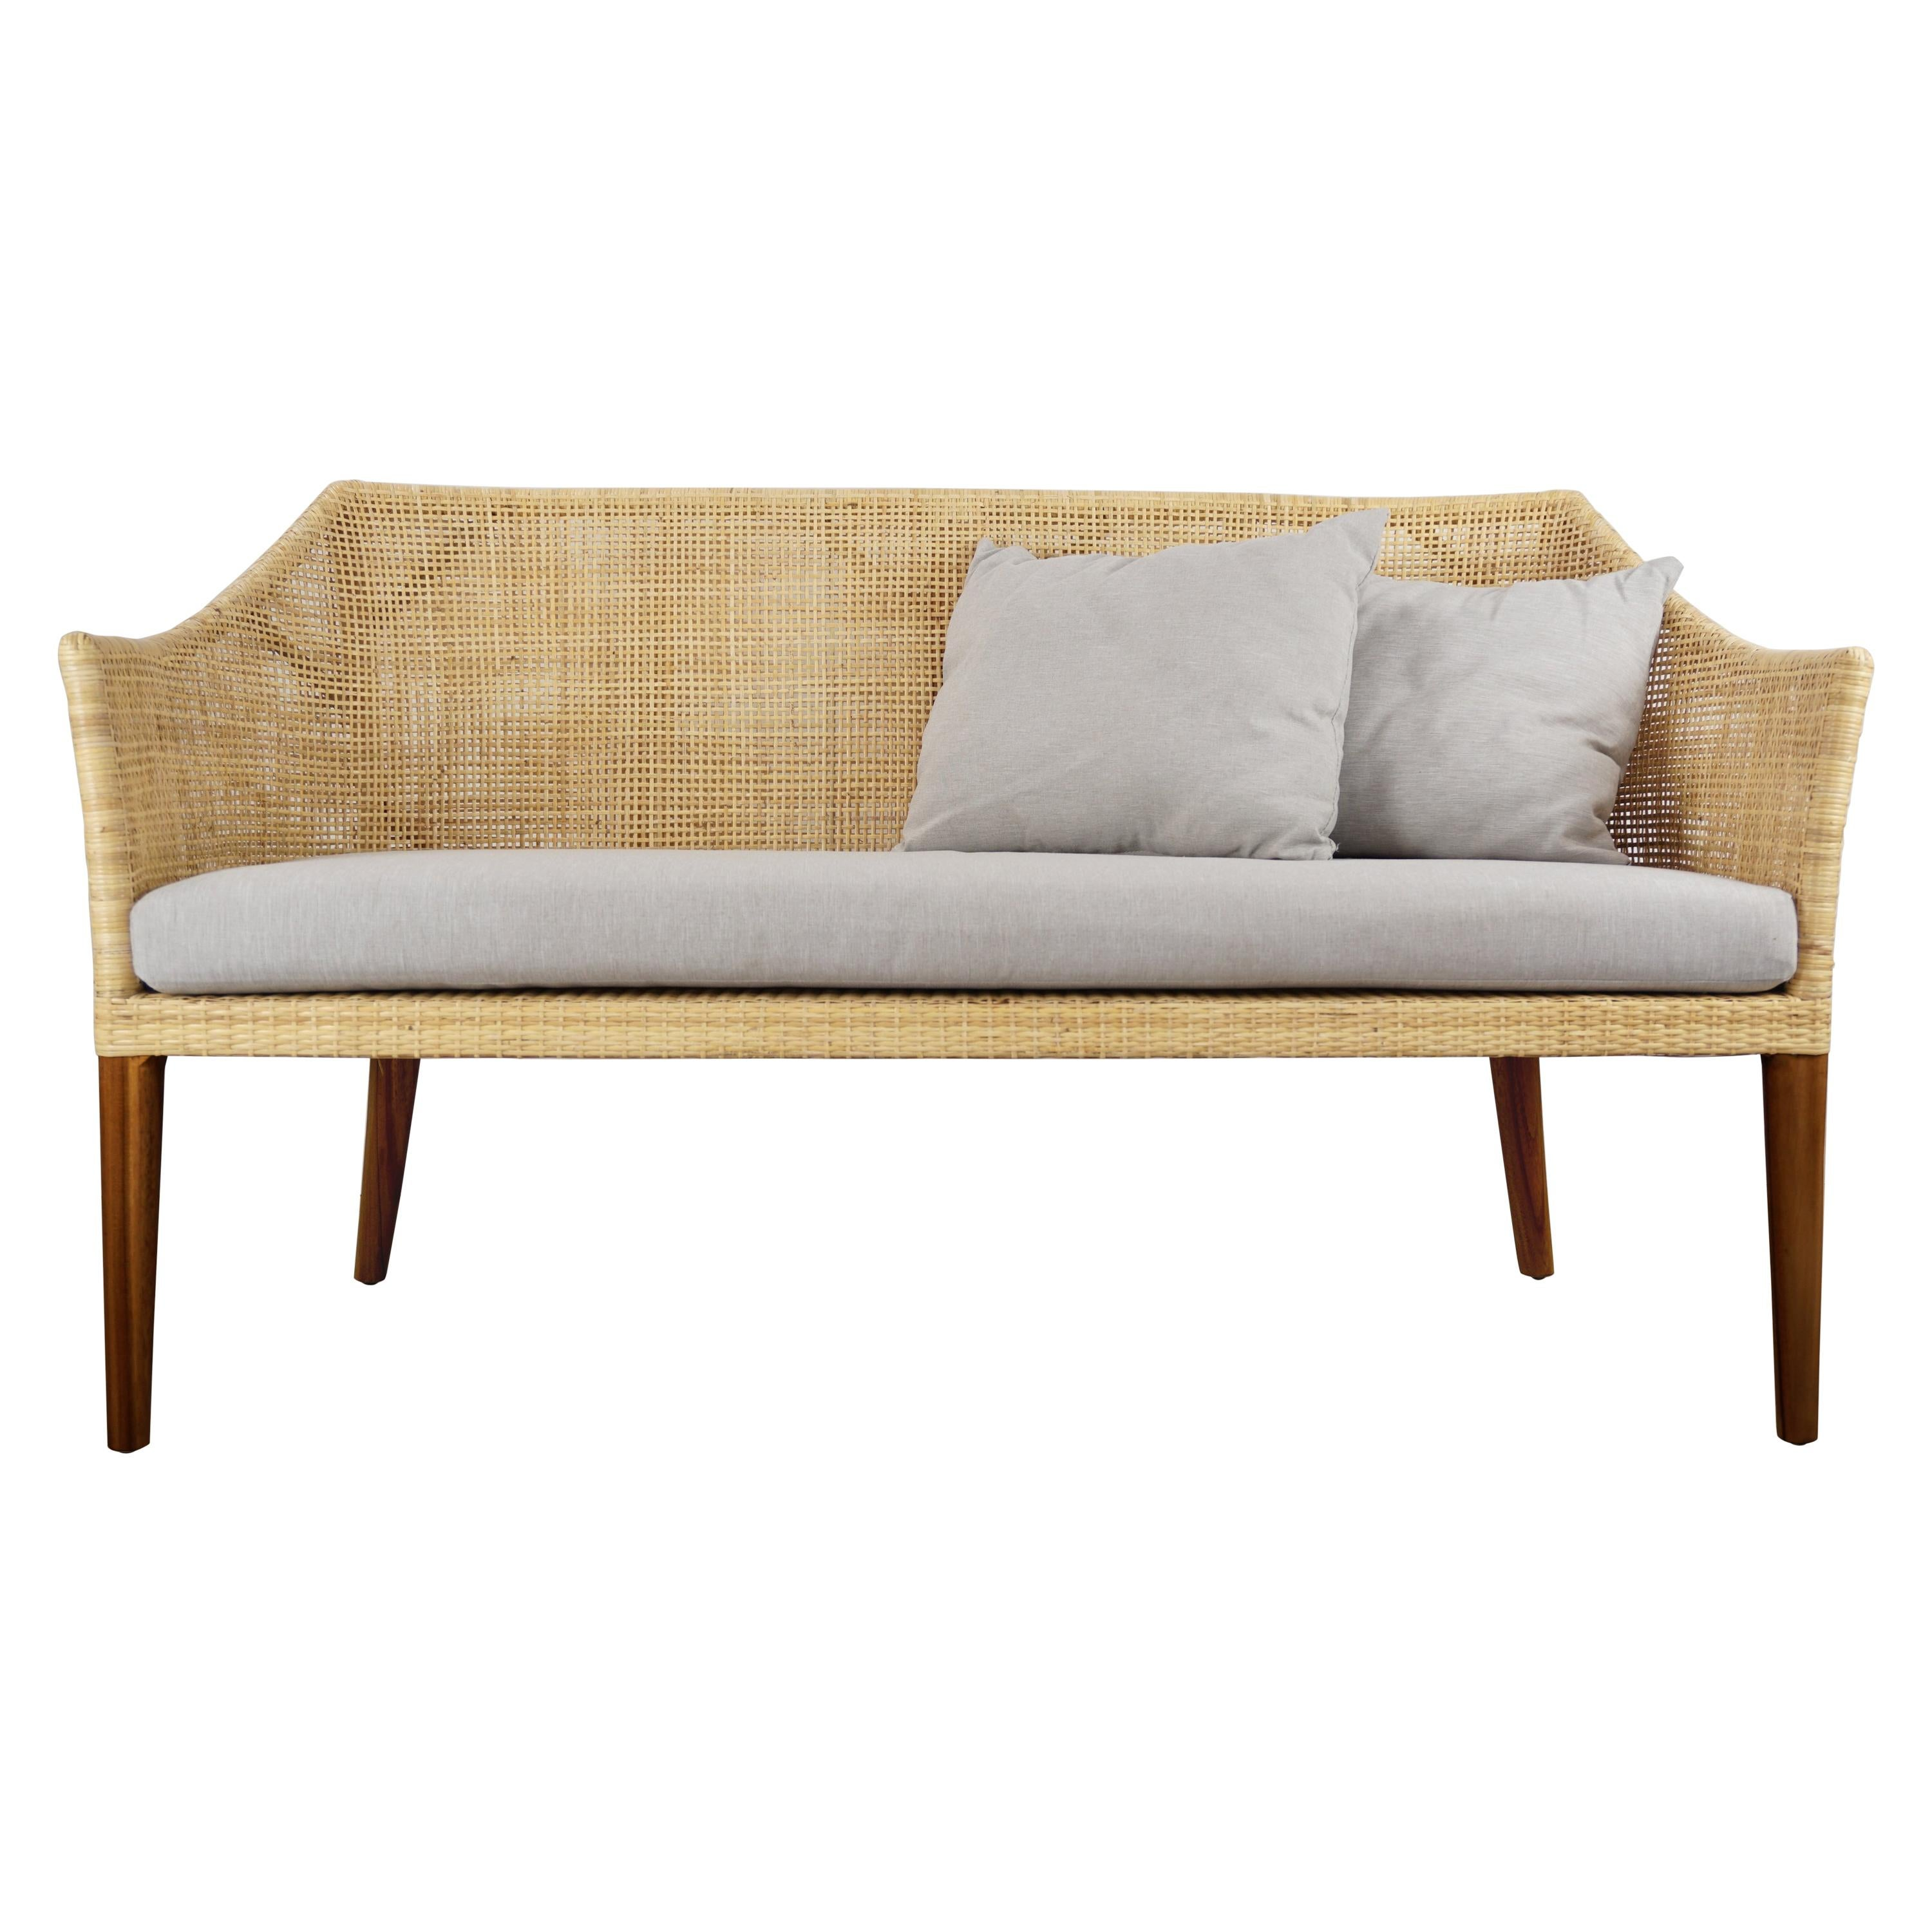 Outdoor Möbel Sale Scandinavian Modern Sofas 775 For Sale At 1stdibs